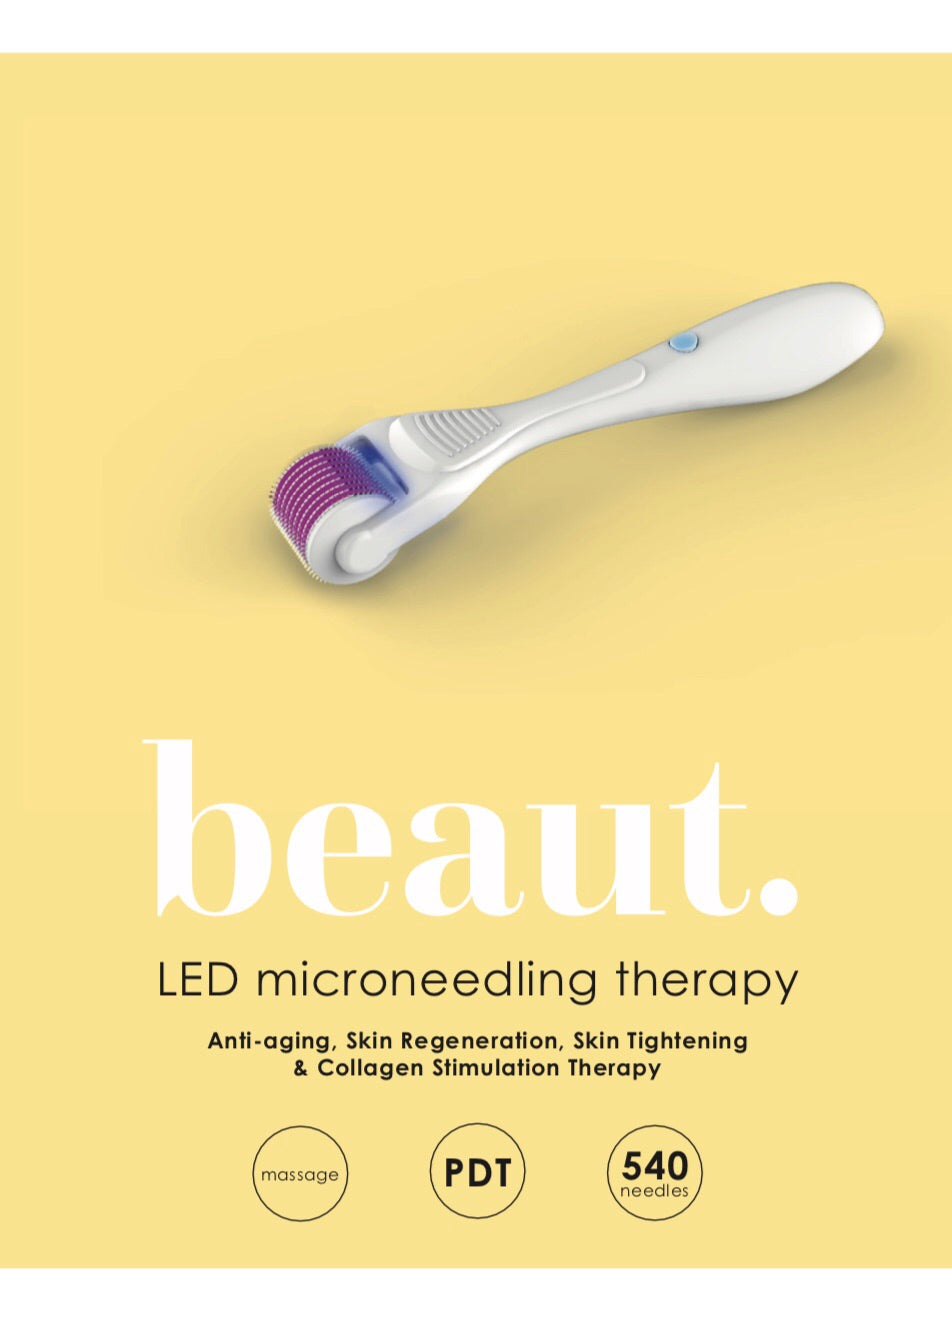 SKIN by beaut.beautyco LED microneedling therapy tool-5 LIGHT Therapy options